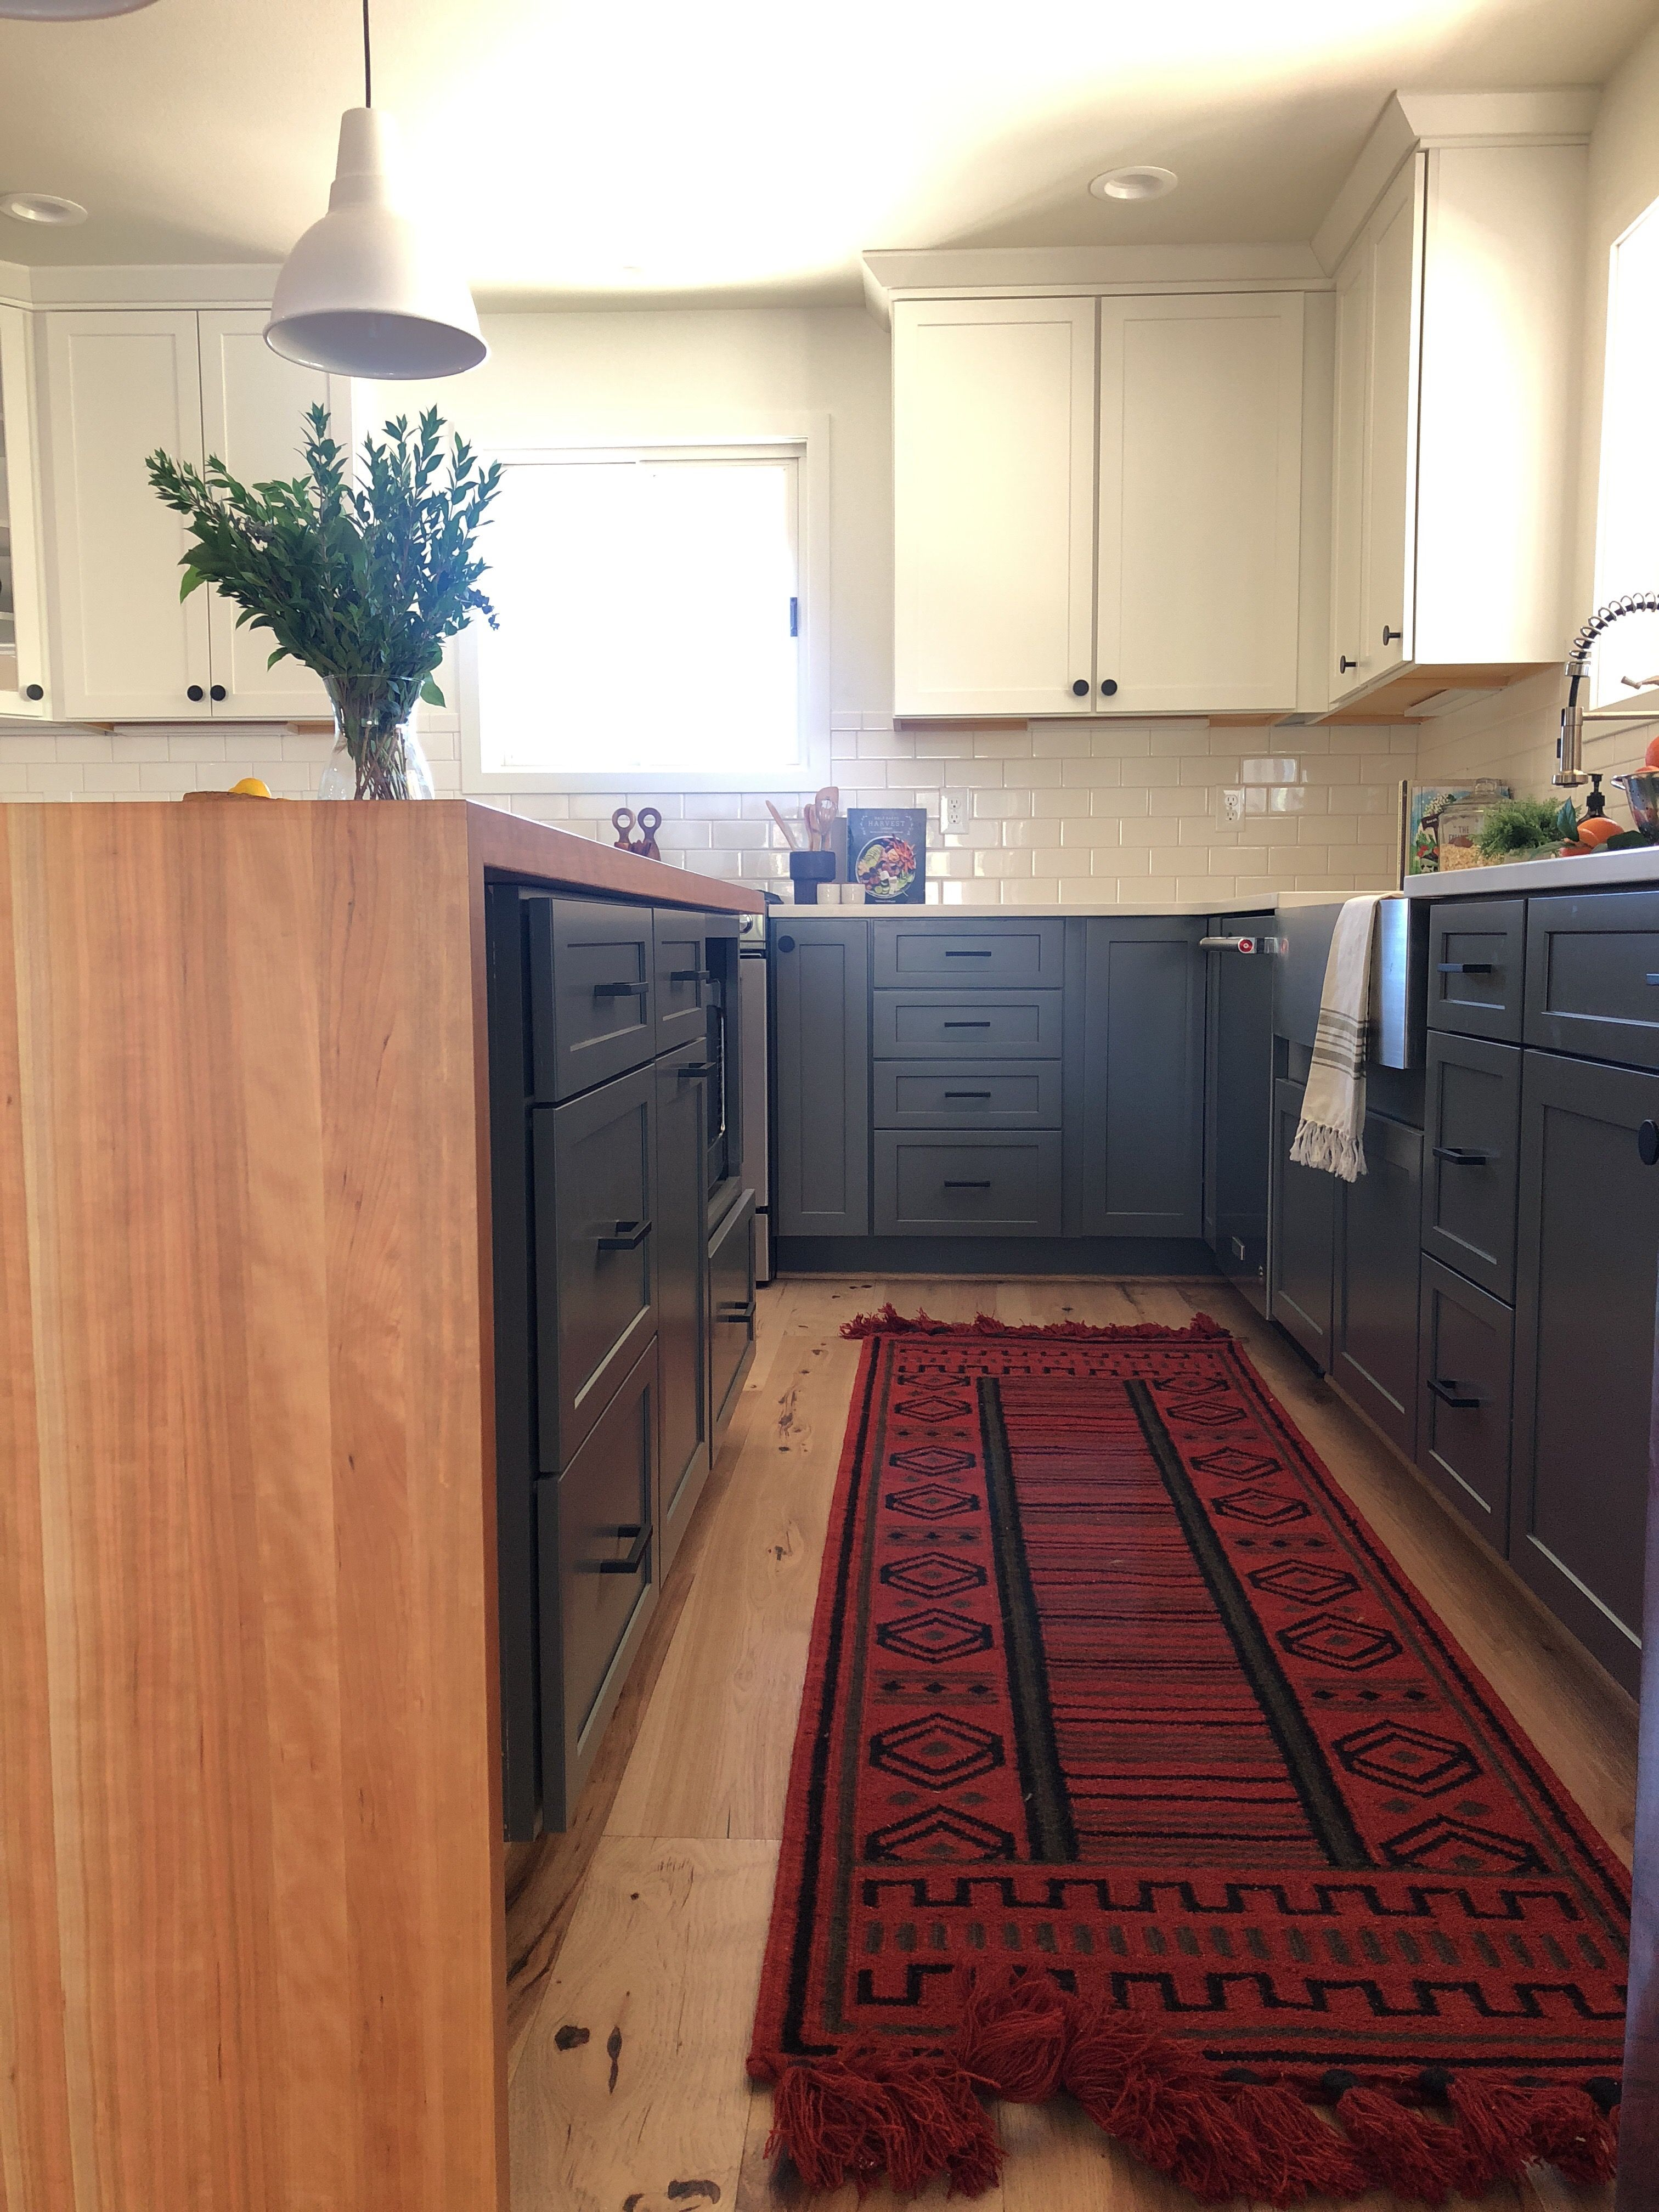 Two Tone Kitchen With Butcher Block Waterfall Island Small Kitchen Decor Kitchen Cabinet Remodel Kitchen Remodel